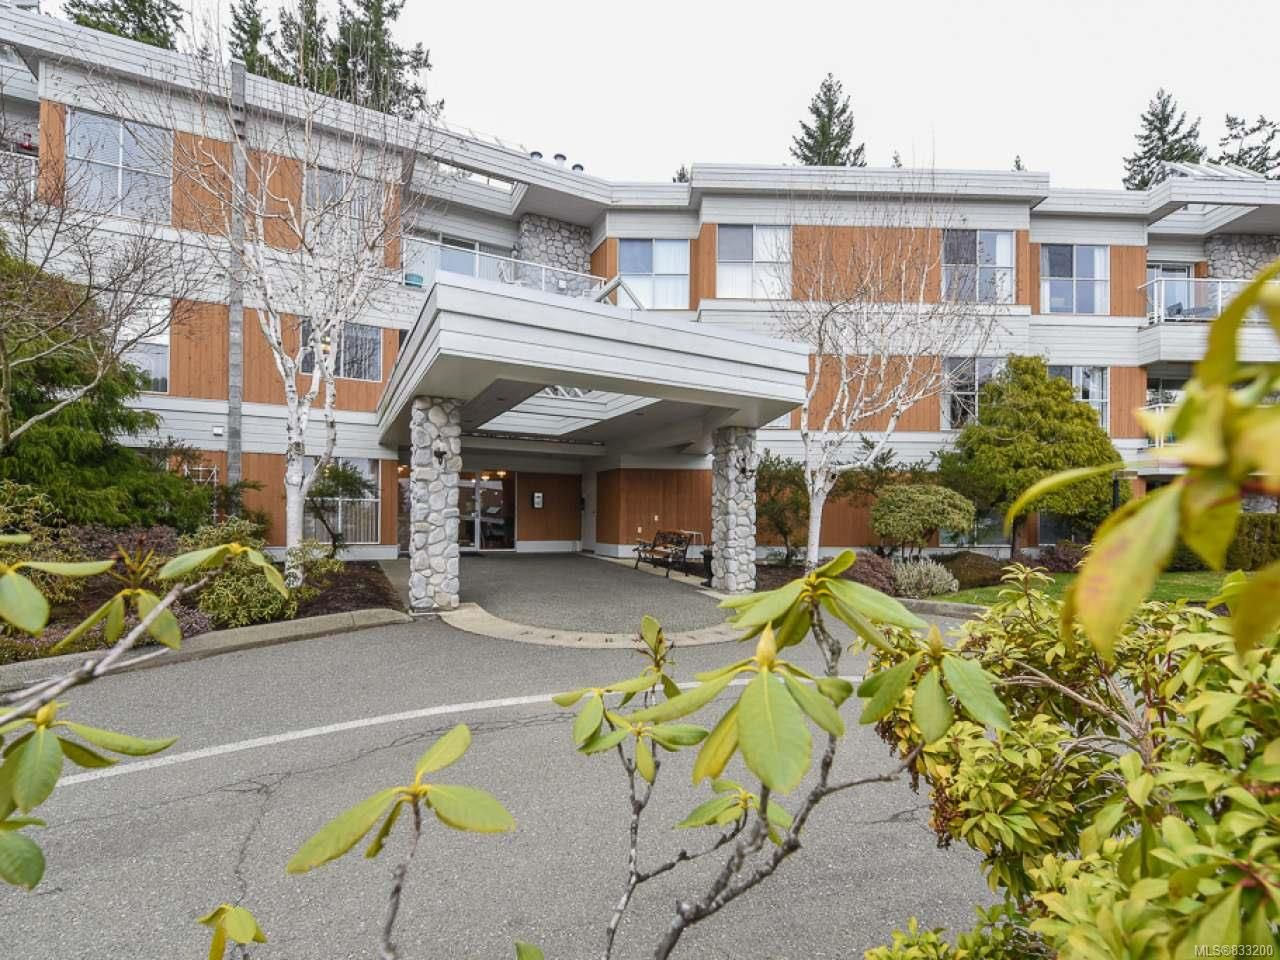 Main Photo: 309 1686 Balmoral Ave in COMOX: CV Comox (Town of) Condo for sale (Comox Valley)  : MLS®# 833200